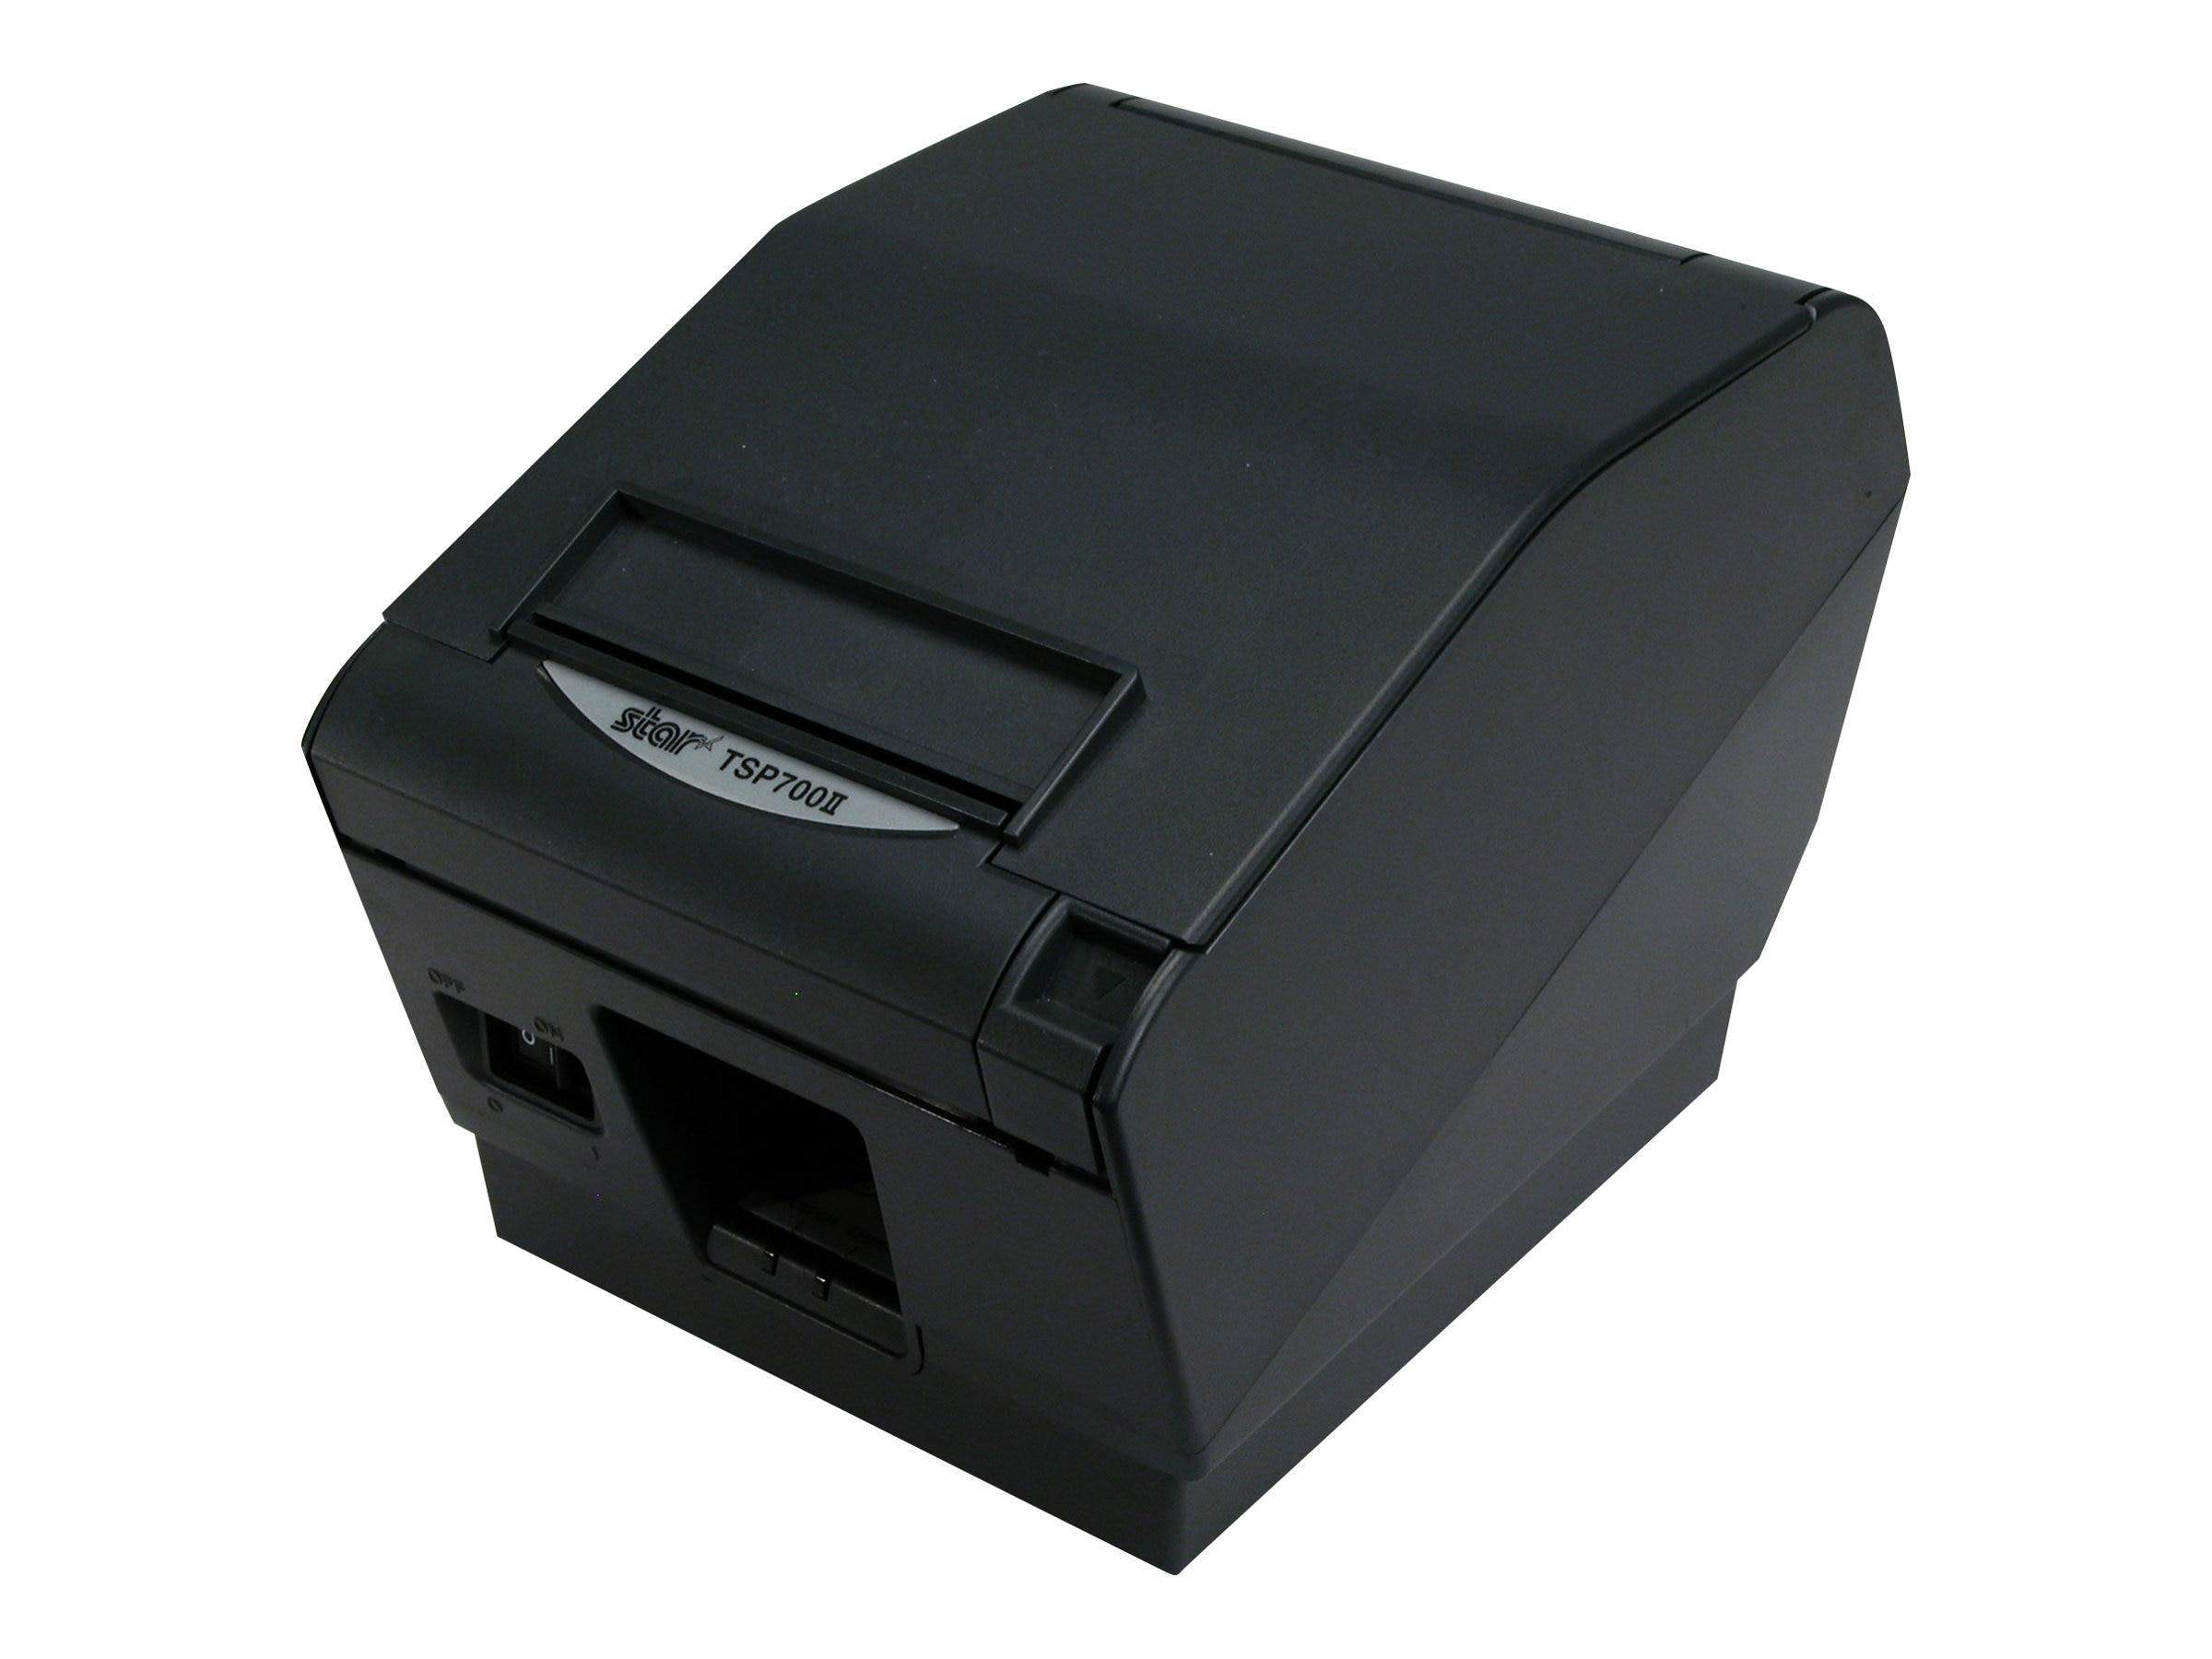 Star Micronics TSP743IIU USB Thermal Printer - Gray